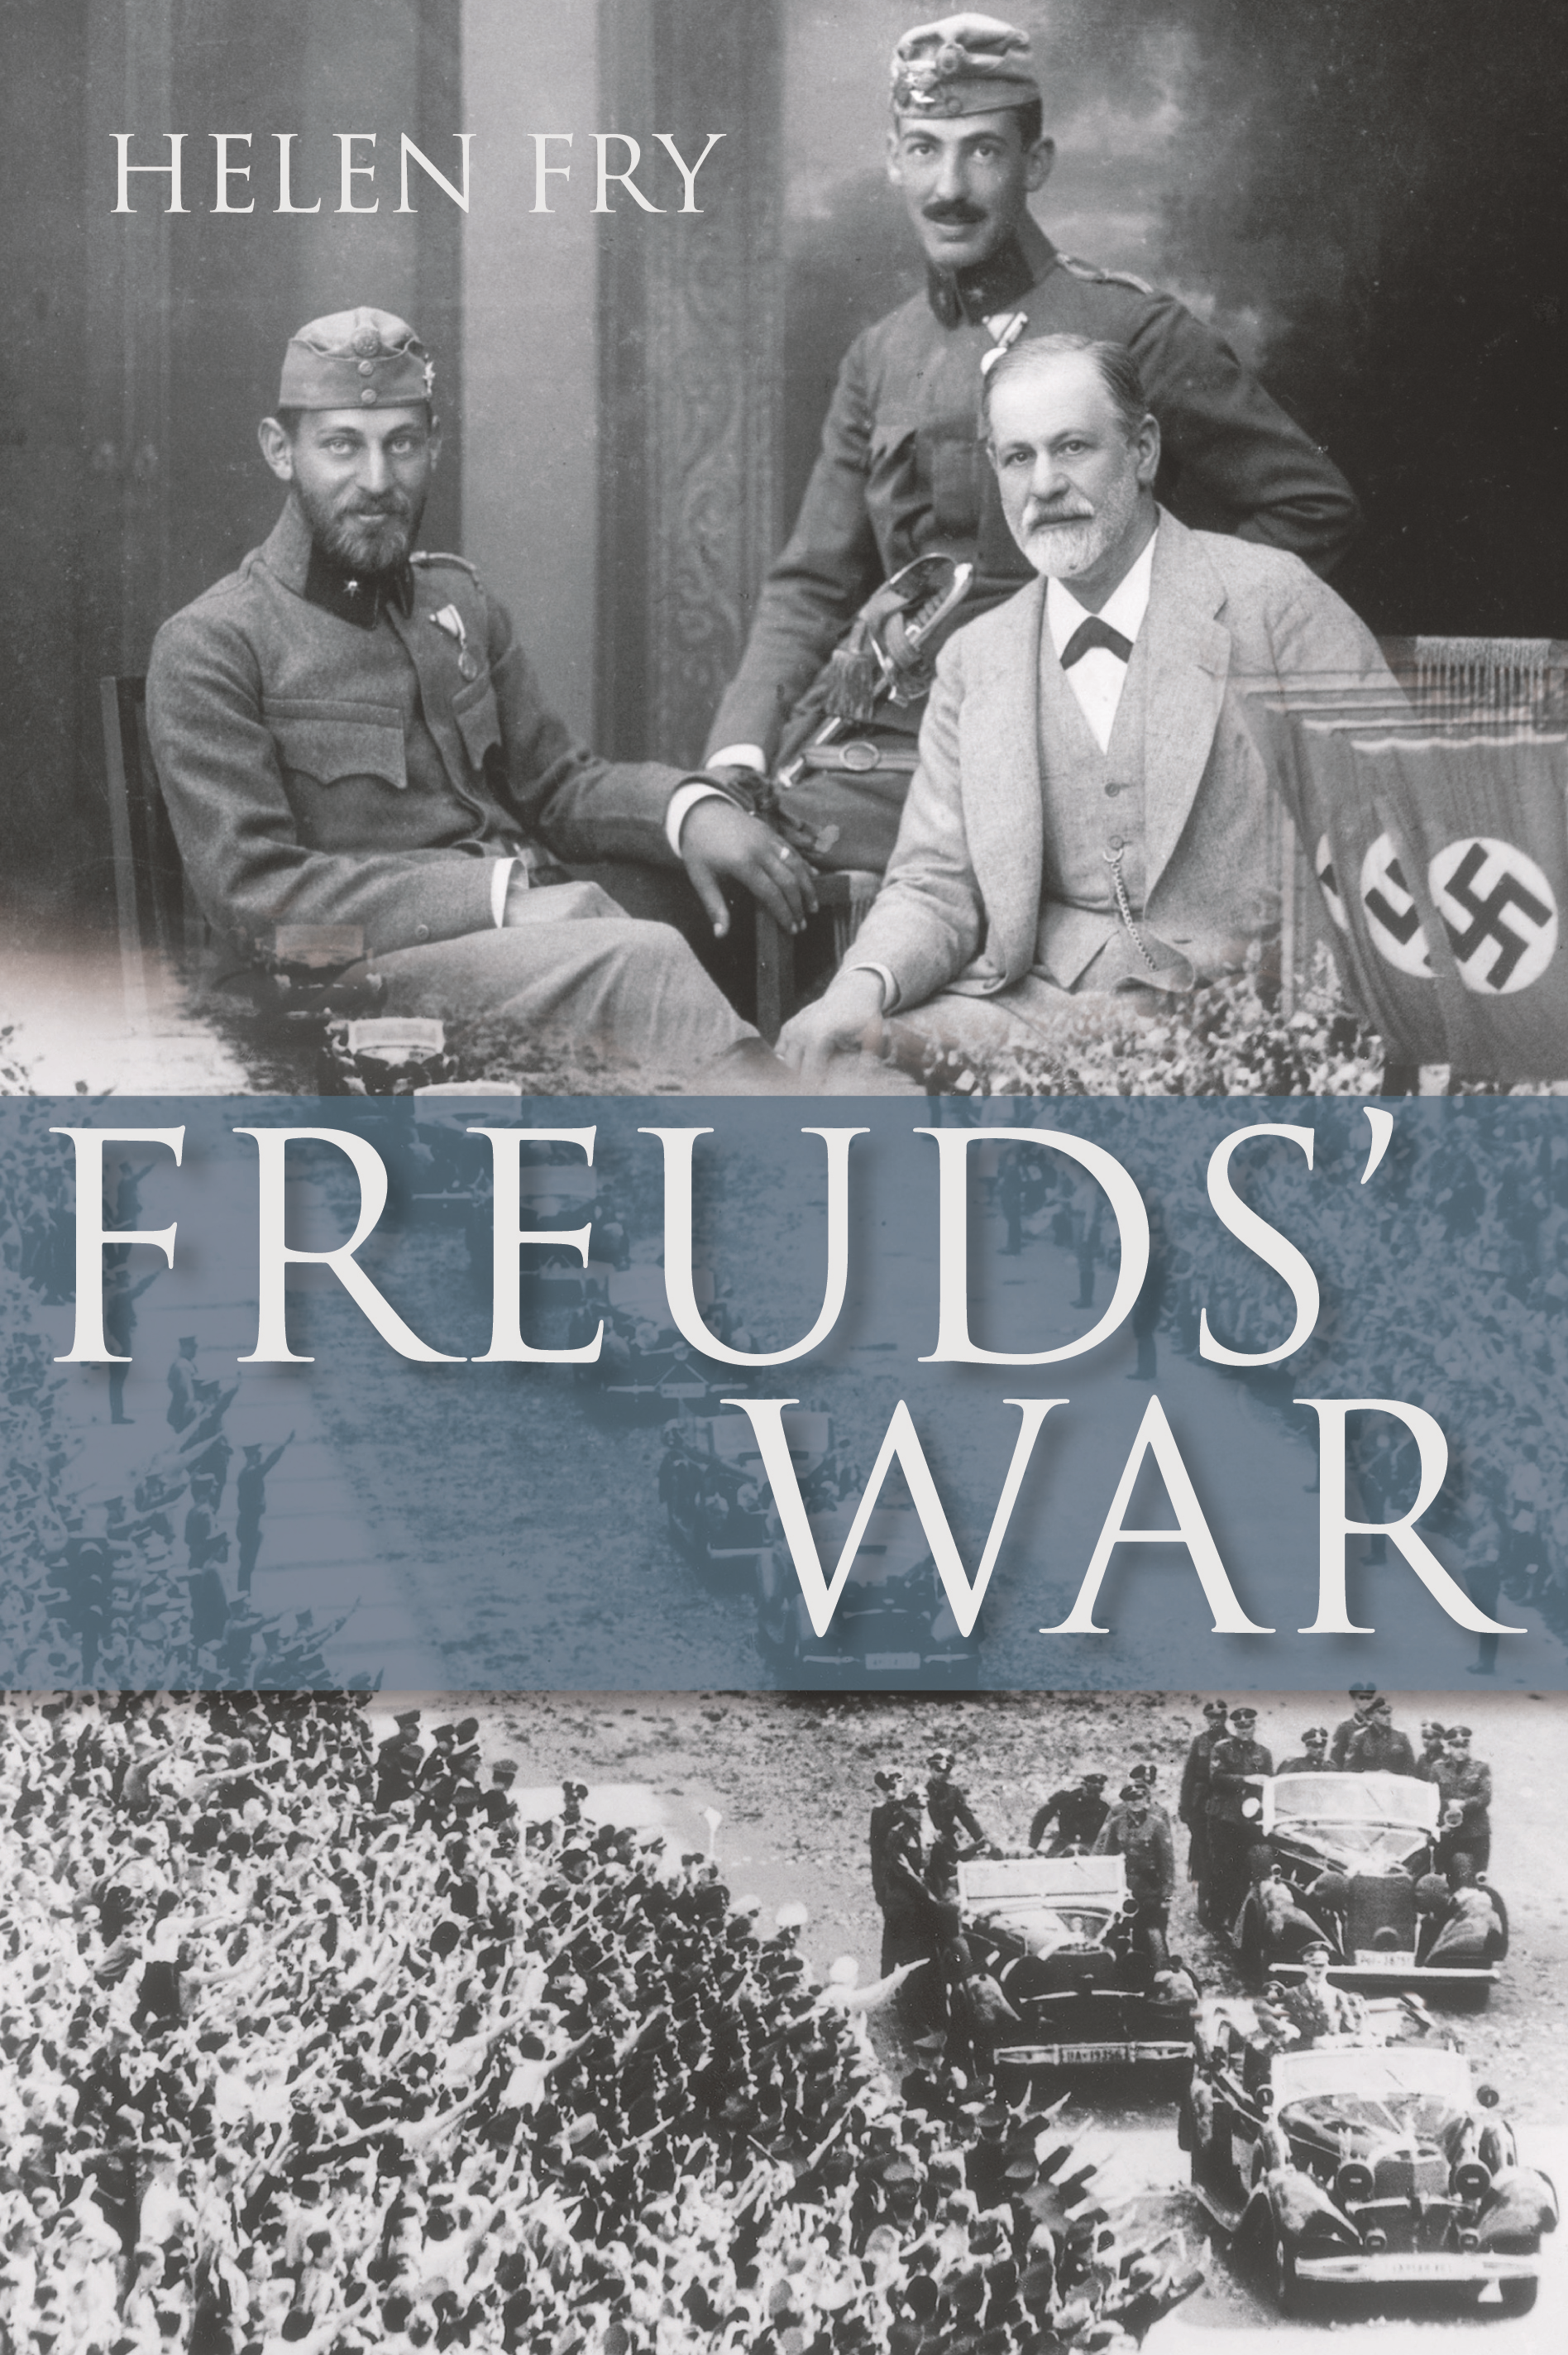 Freuds' War